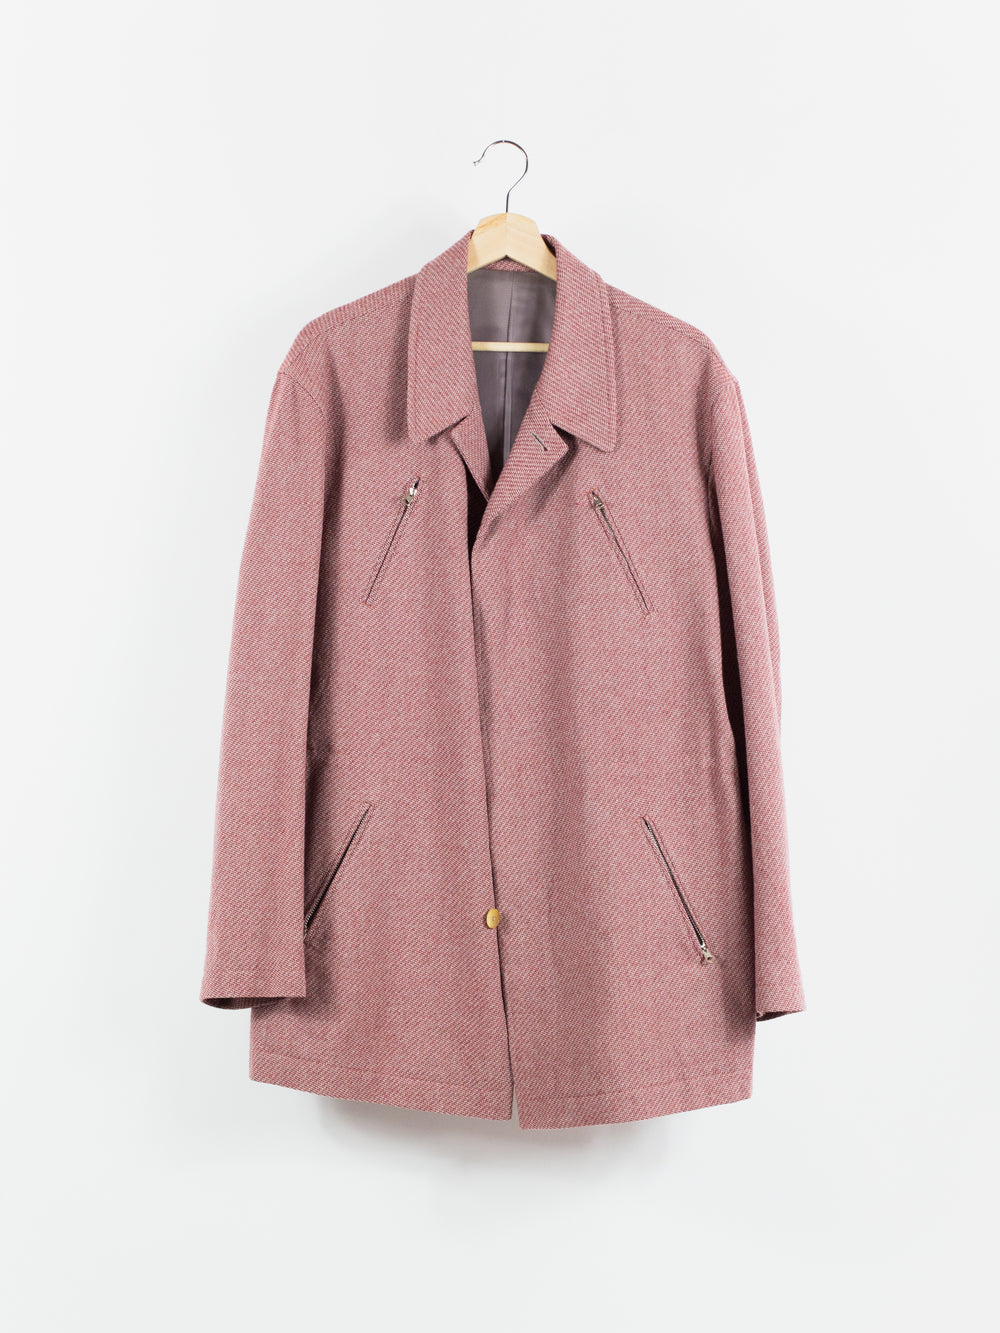 Yohji Yamamoto Y's For Men 90s Pink 2-Piece Suit